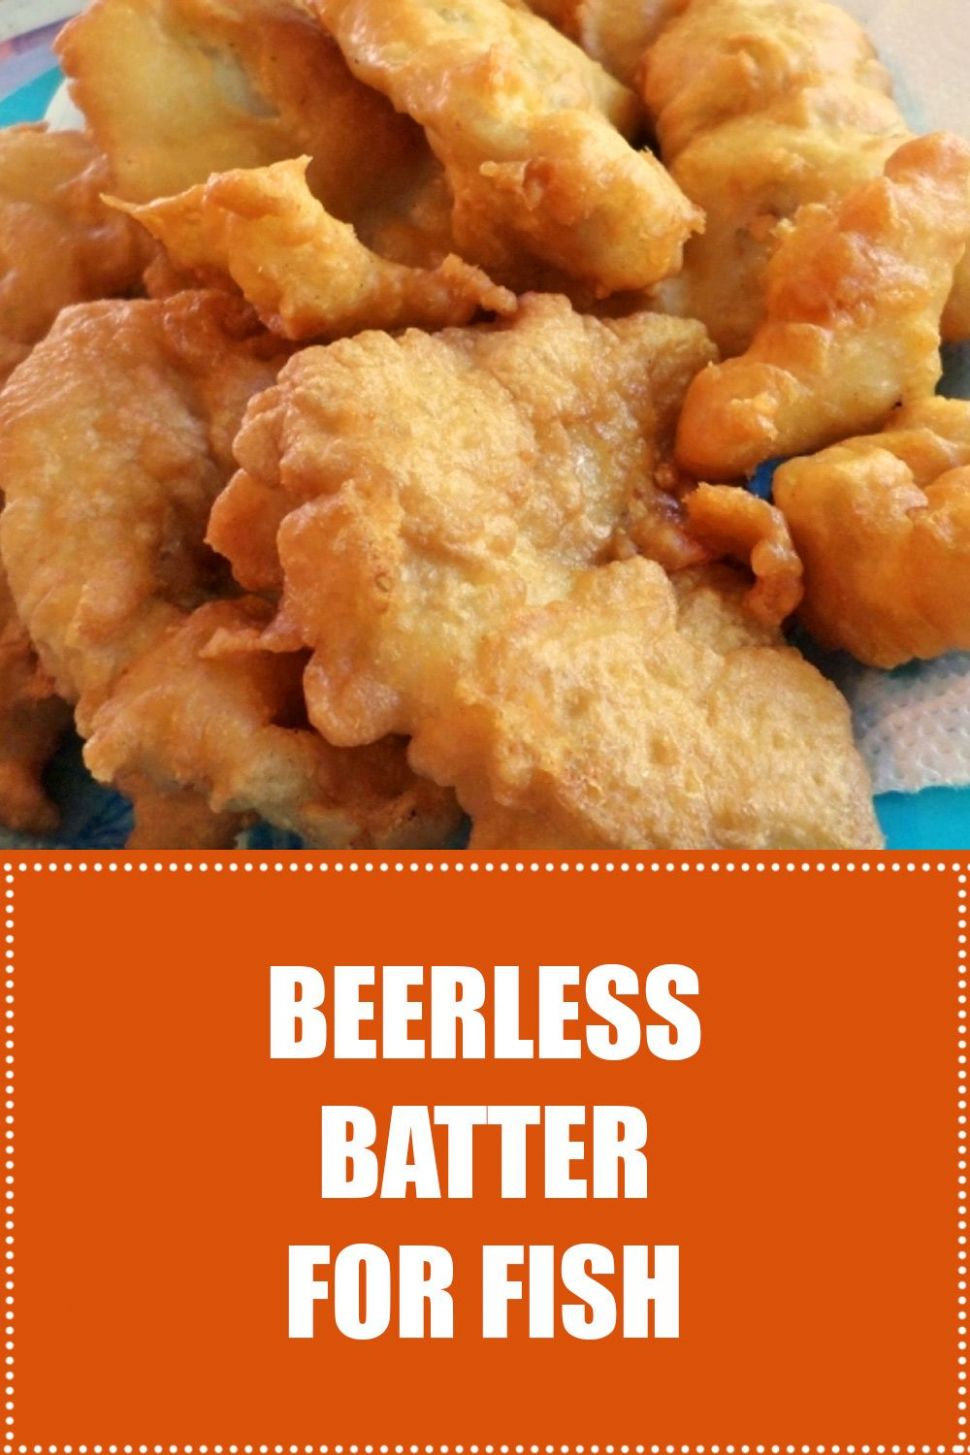 Beerless Batter For Fish - Recipe Fish Batter Without Beer